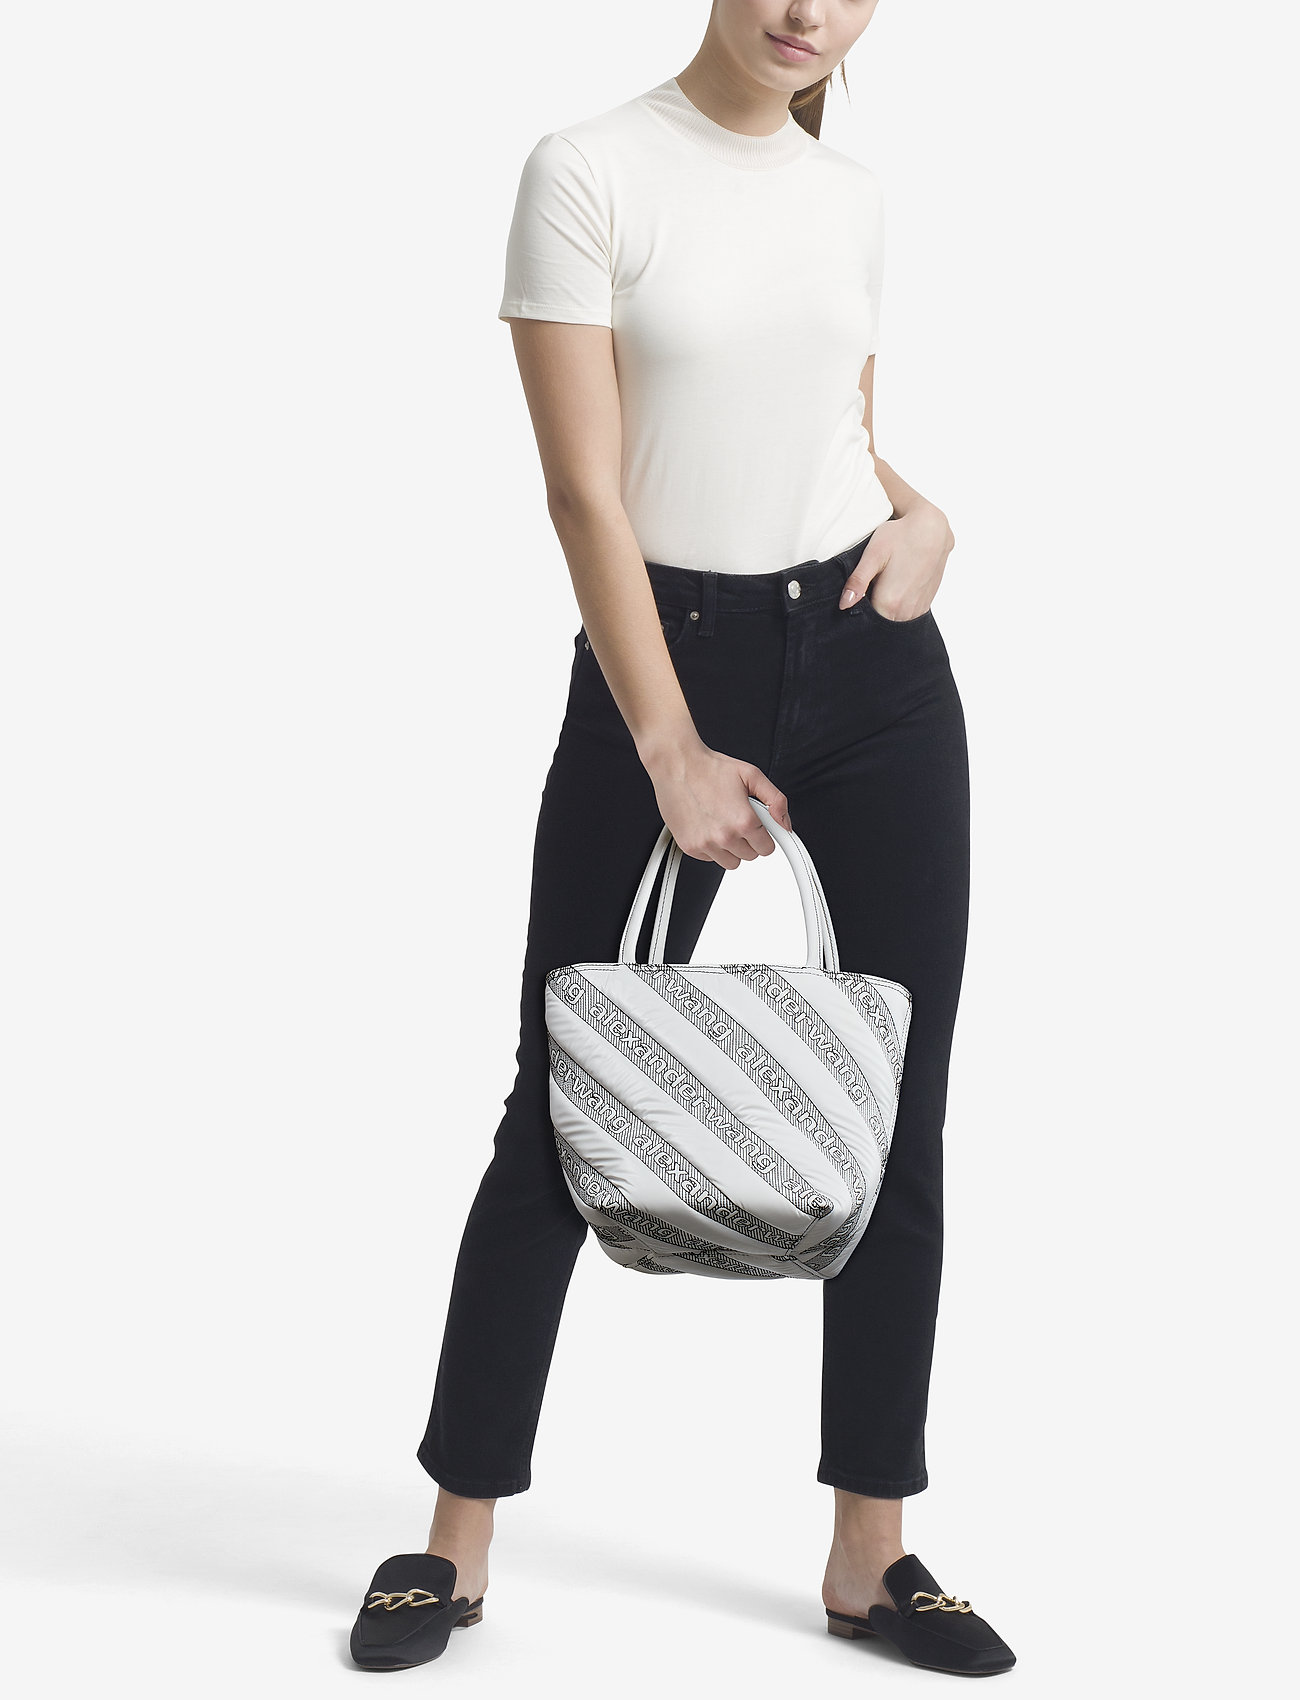 Alexander Wang - ROXY SOFT SMALL TOTE WHITE LOGO QUILTED NYLON - fashion shoppers - white